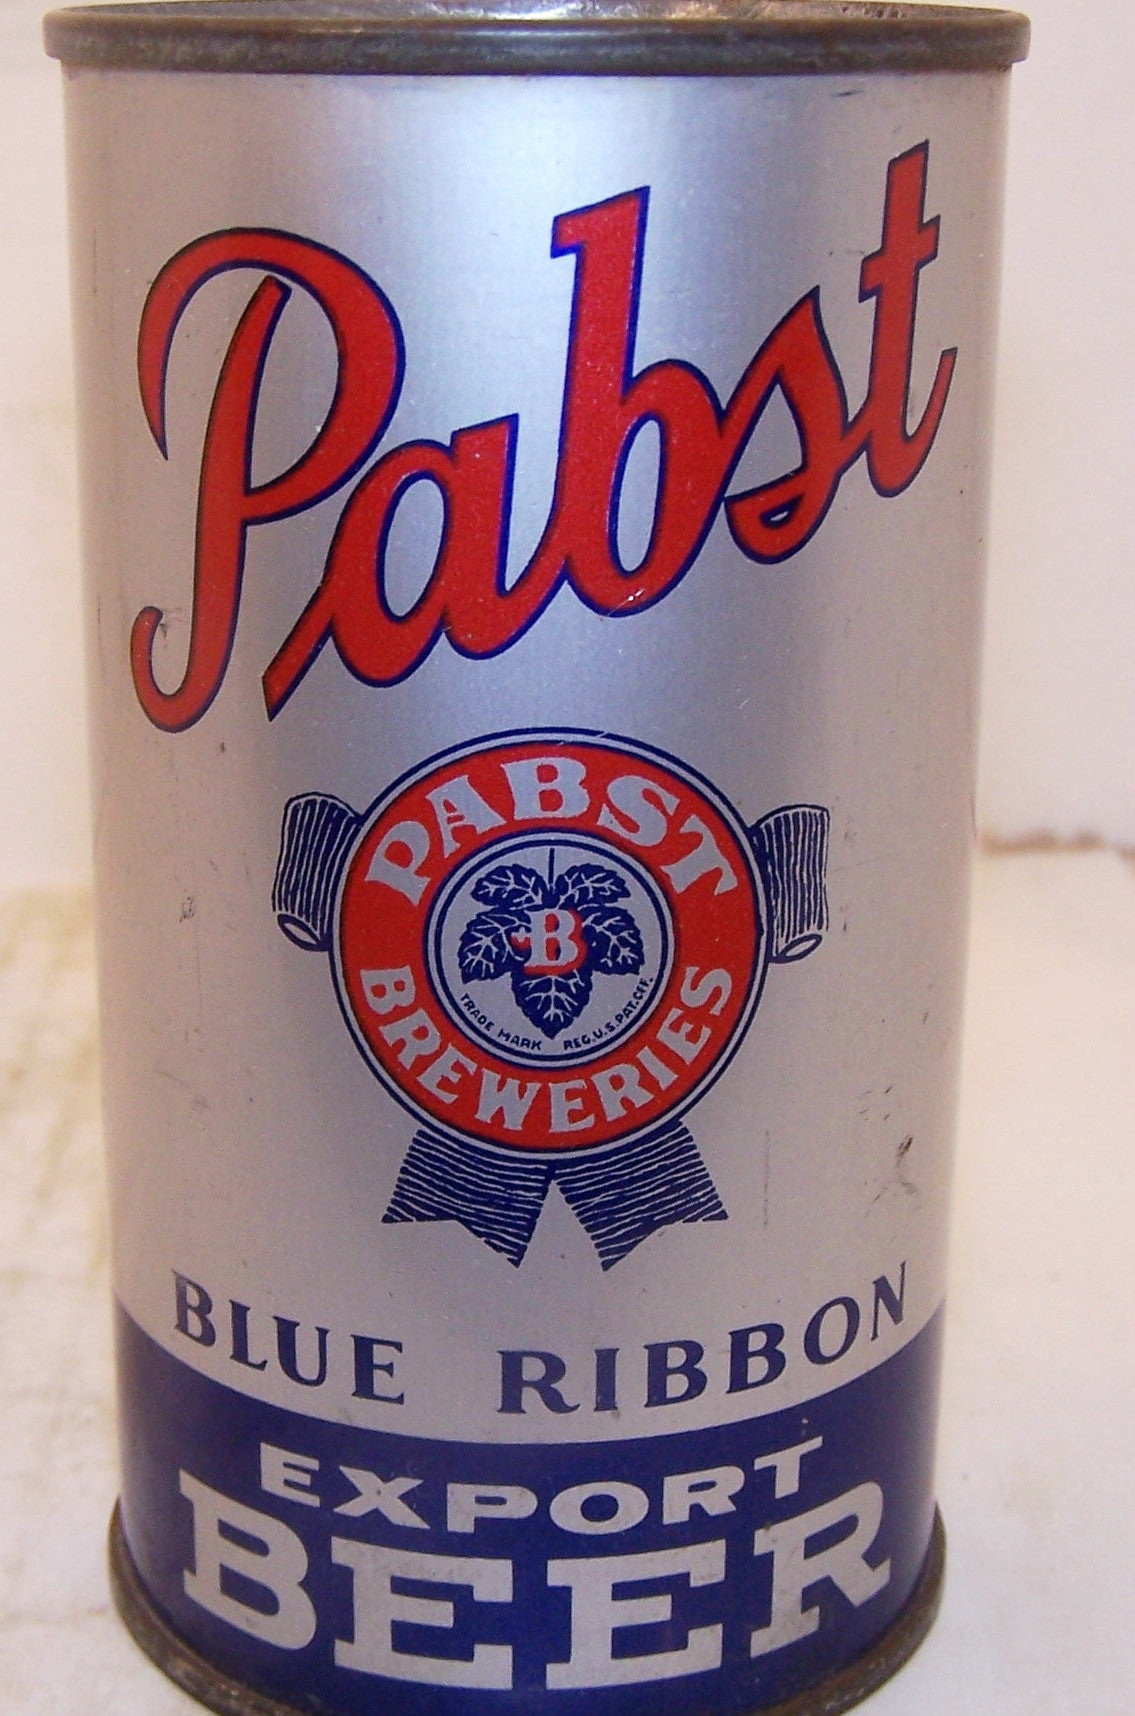 Pabst Blue Ribbon Export Beer (Red Opener) Lilek page # 655, Grade 1 Sold on 11/19/14